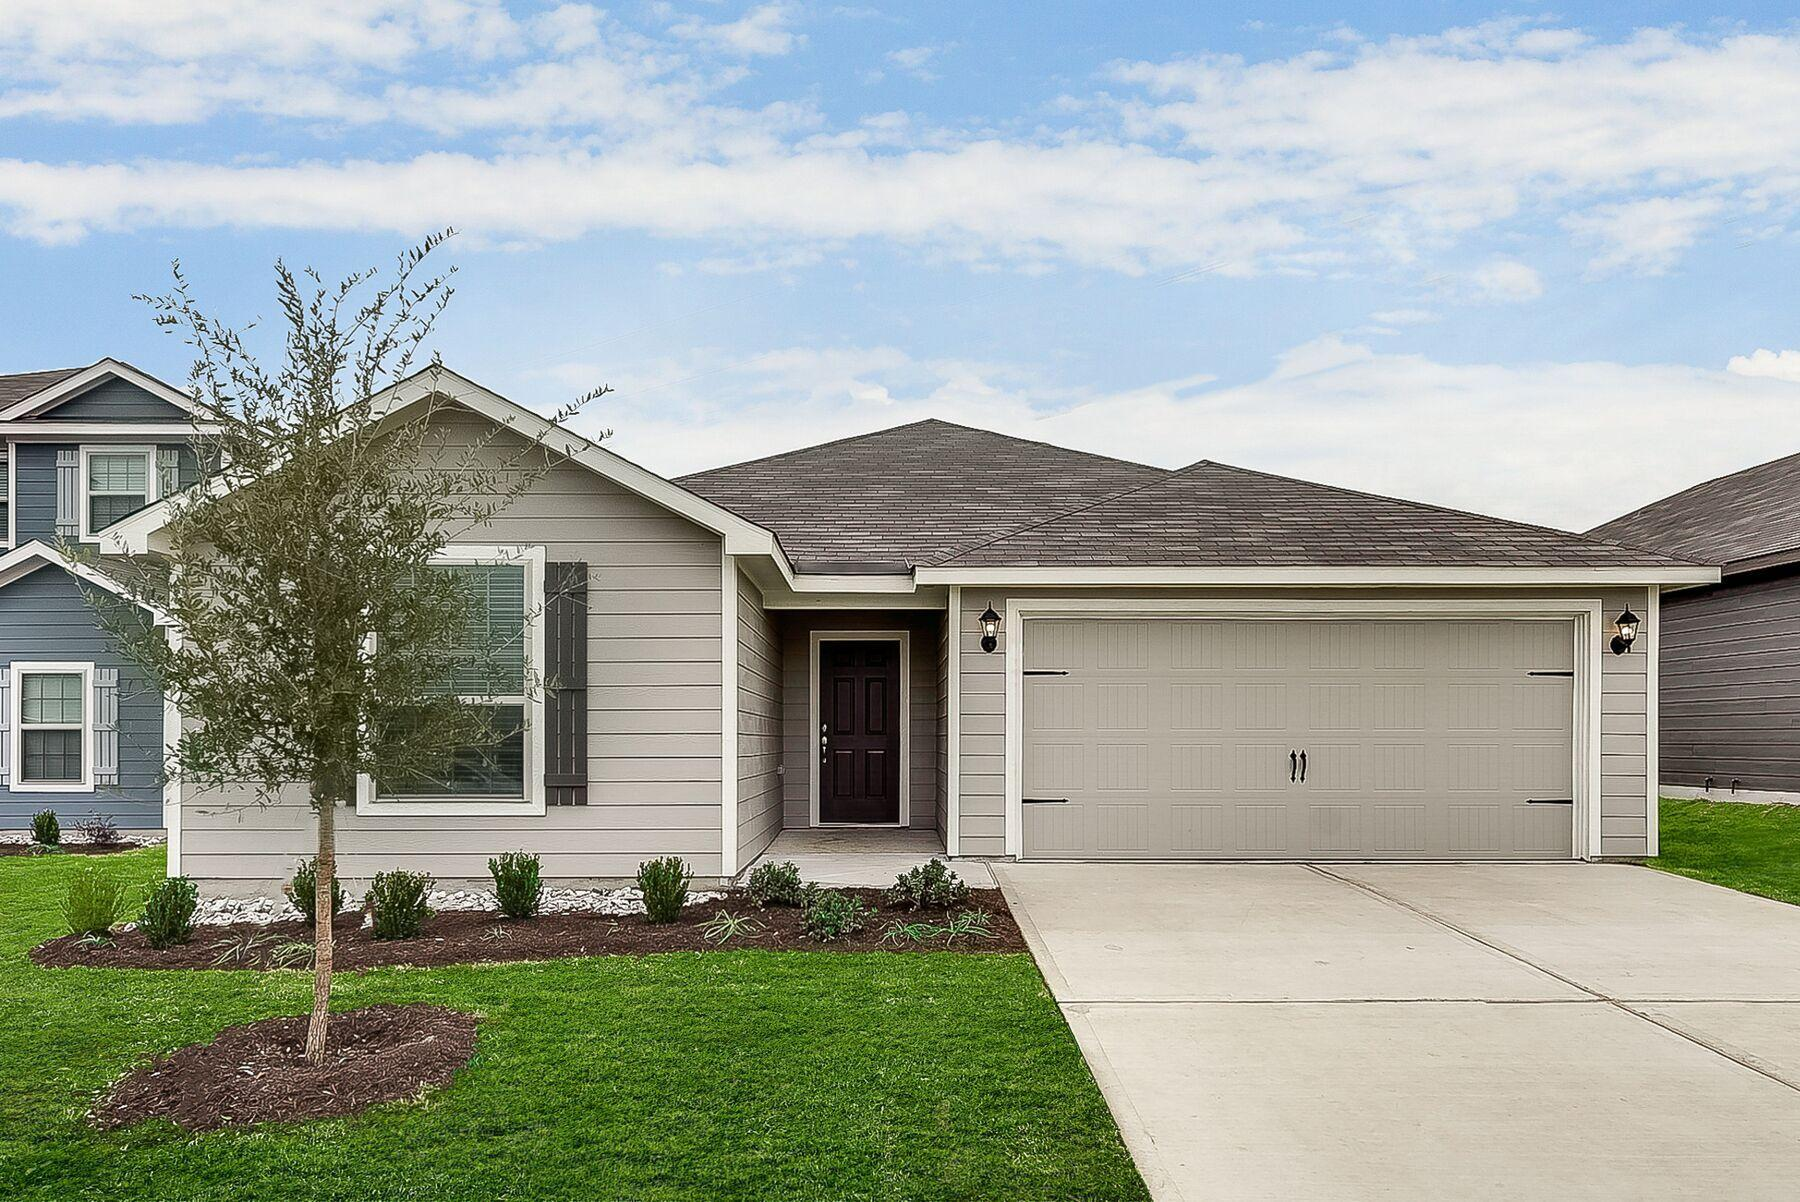 The Sabine by LGI Homes:The Sabine plan is now available at Patriot Estates!